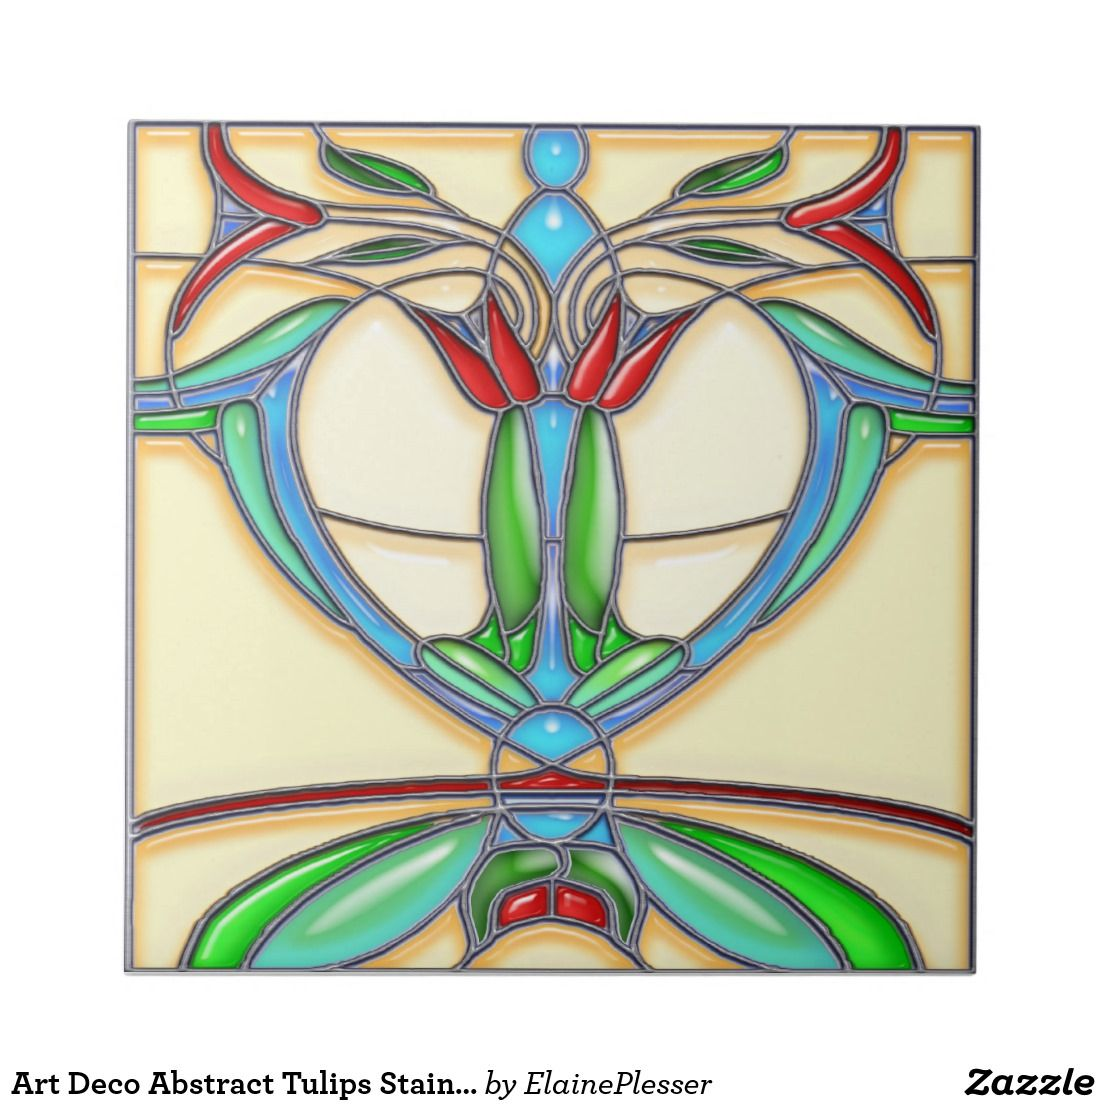 Art Deco Abstract Tulips Stained Glass